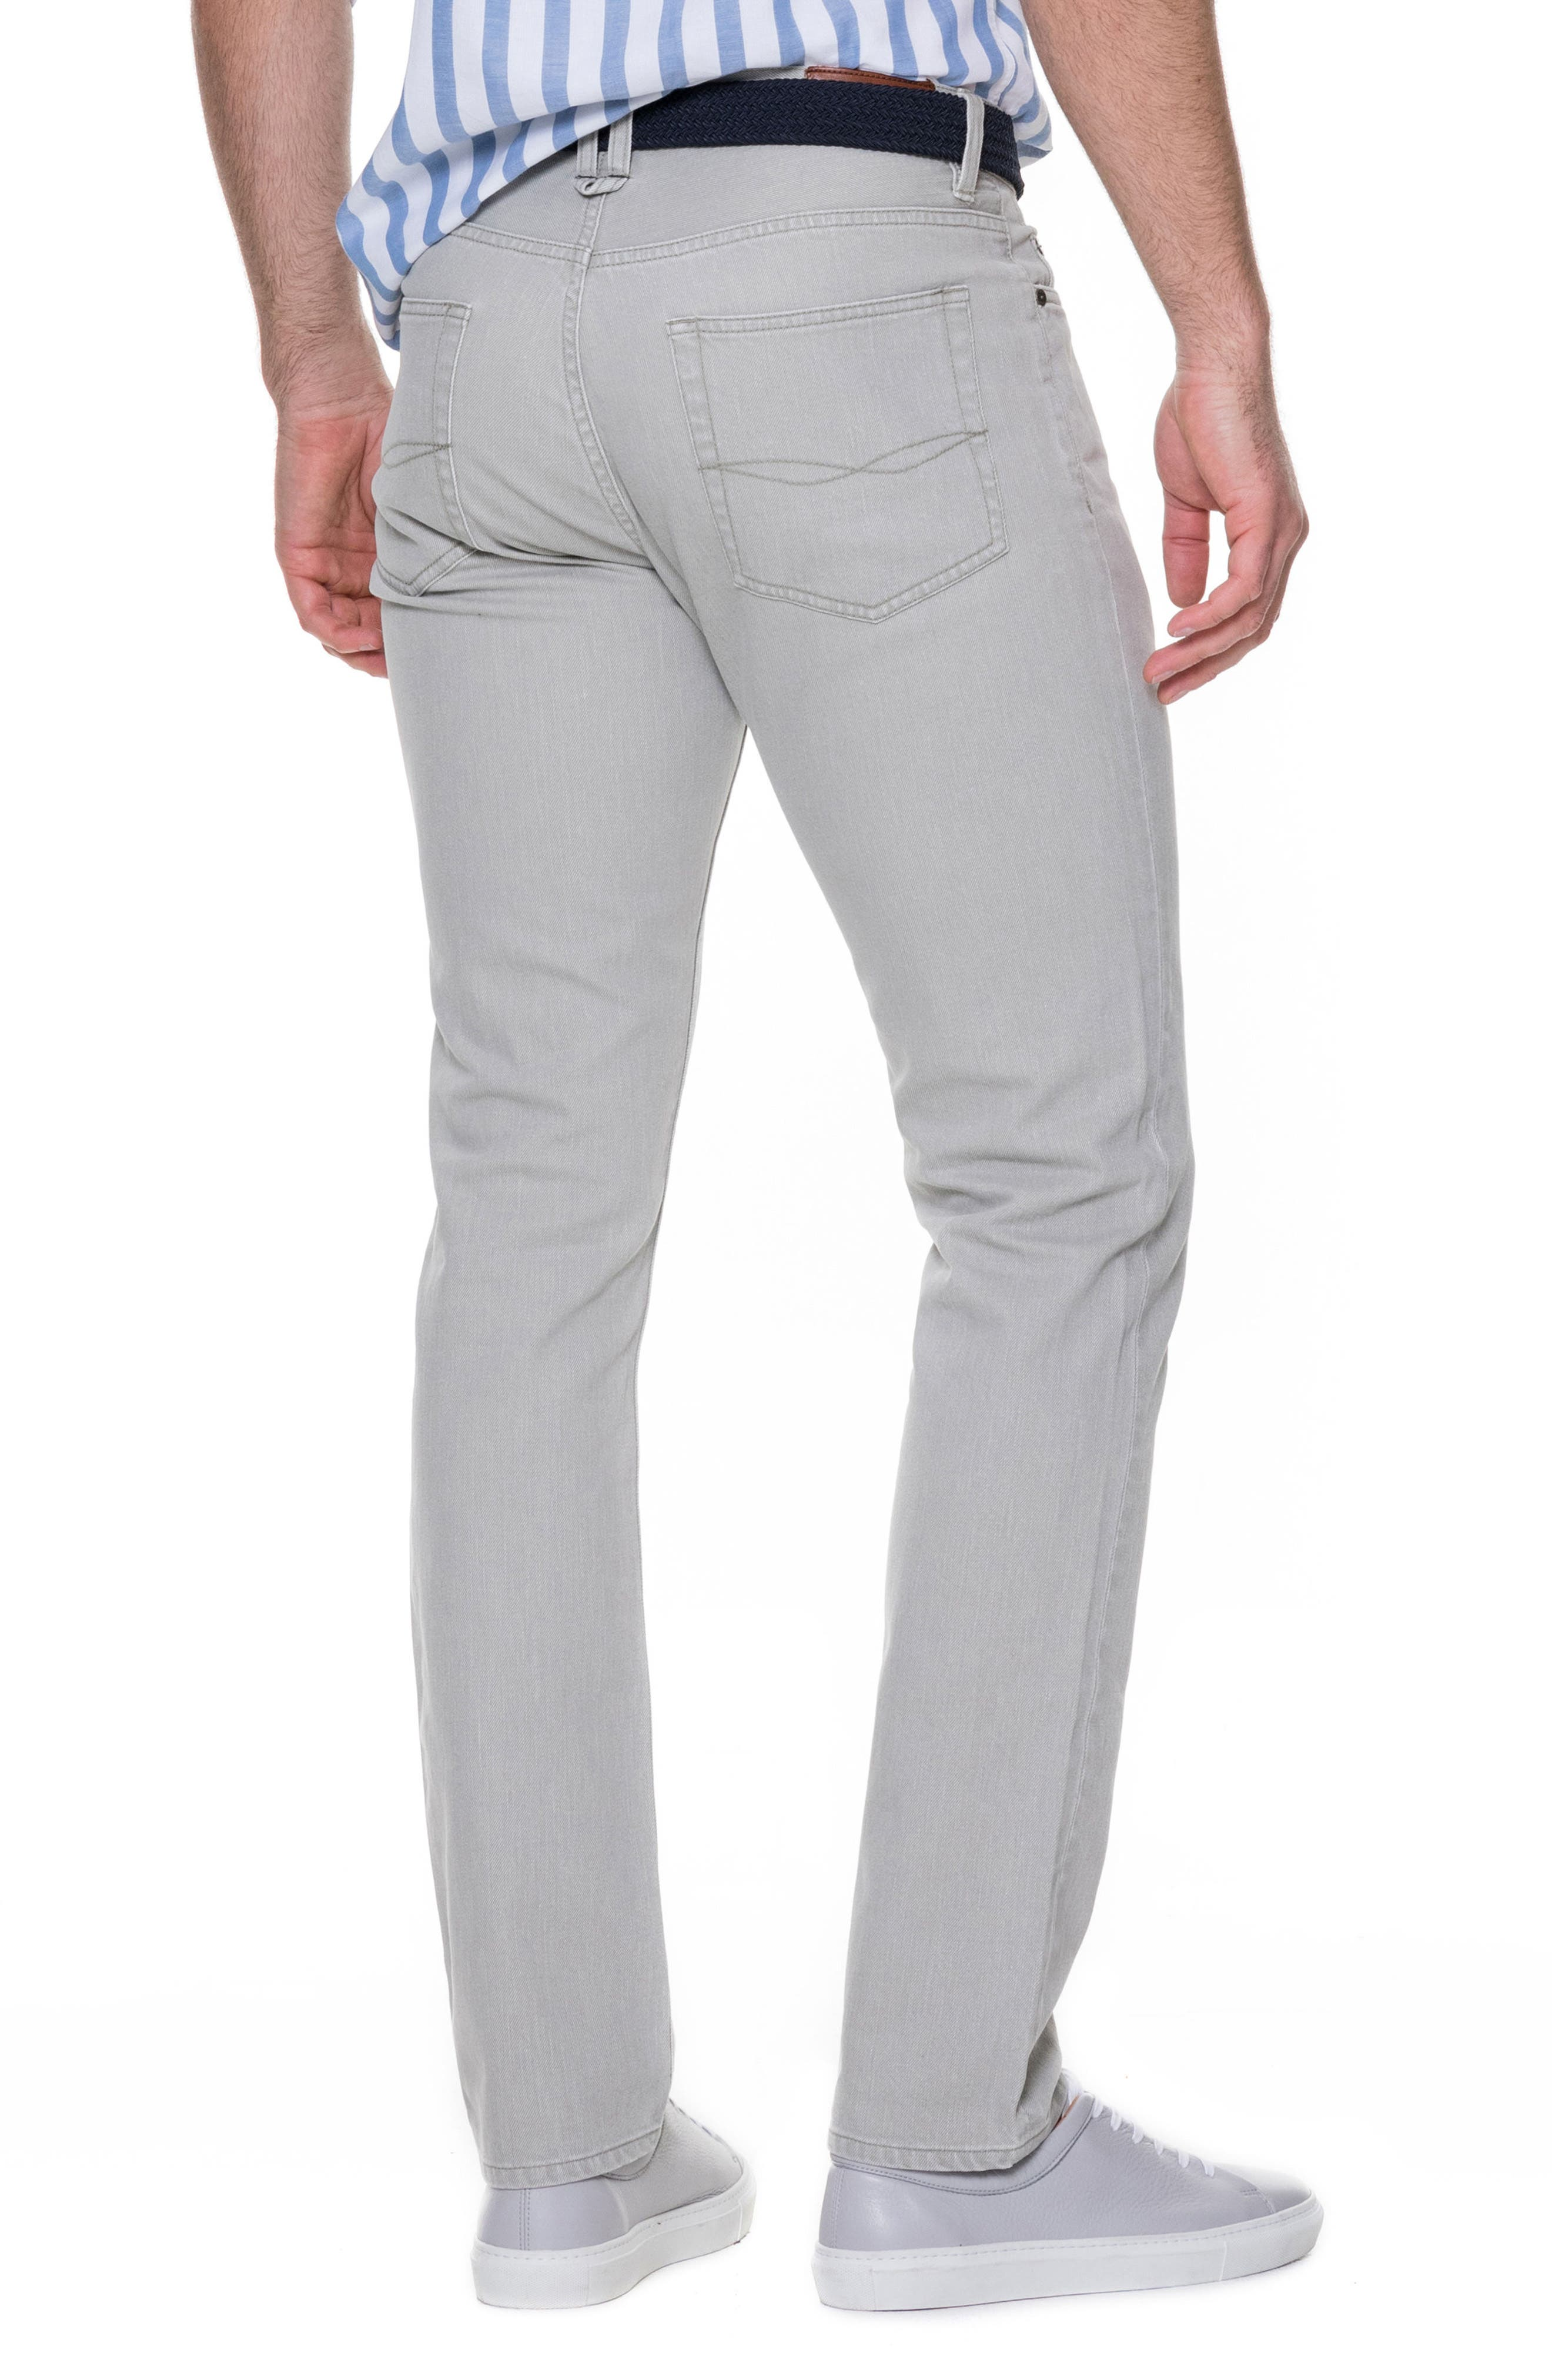 Tolson Straight Leg Jeans,                             Alternate thumbnail 2, color,                             Barley